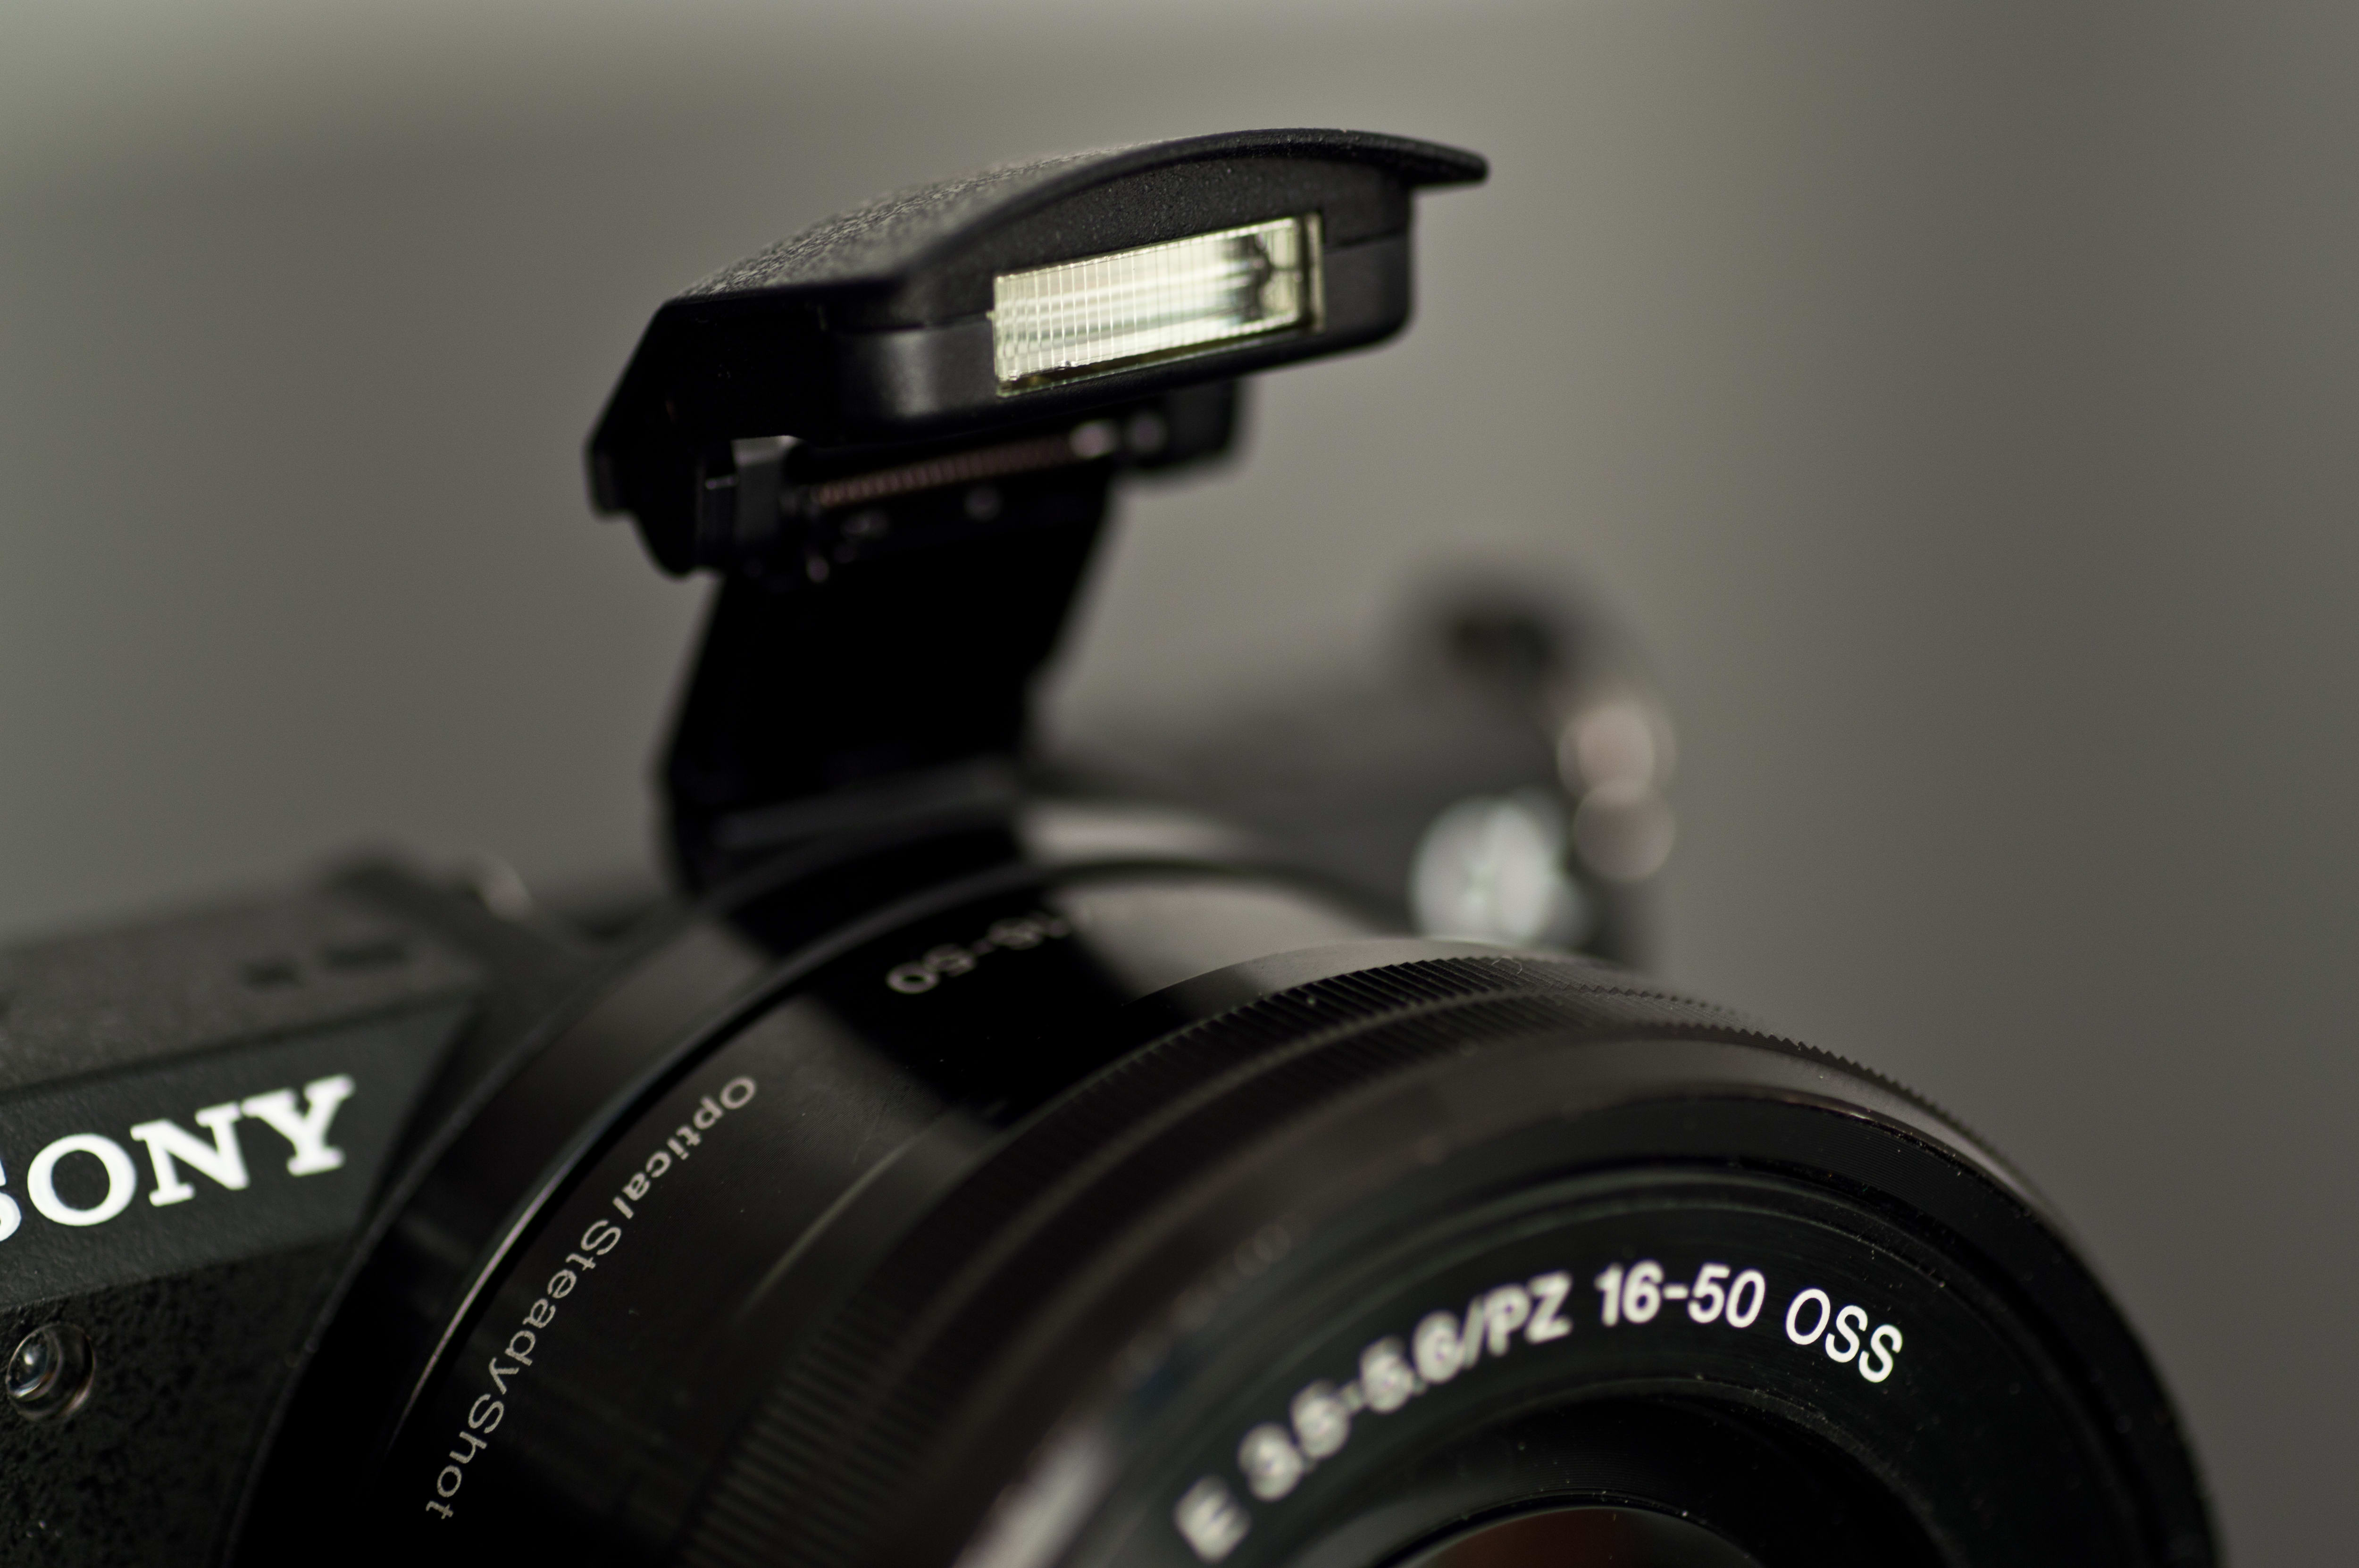 A photo of the pop-up flash on the A5100.